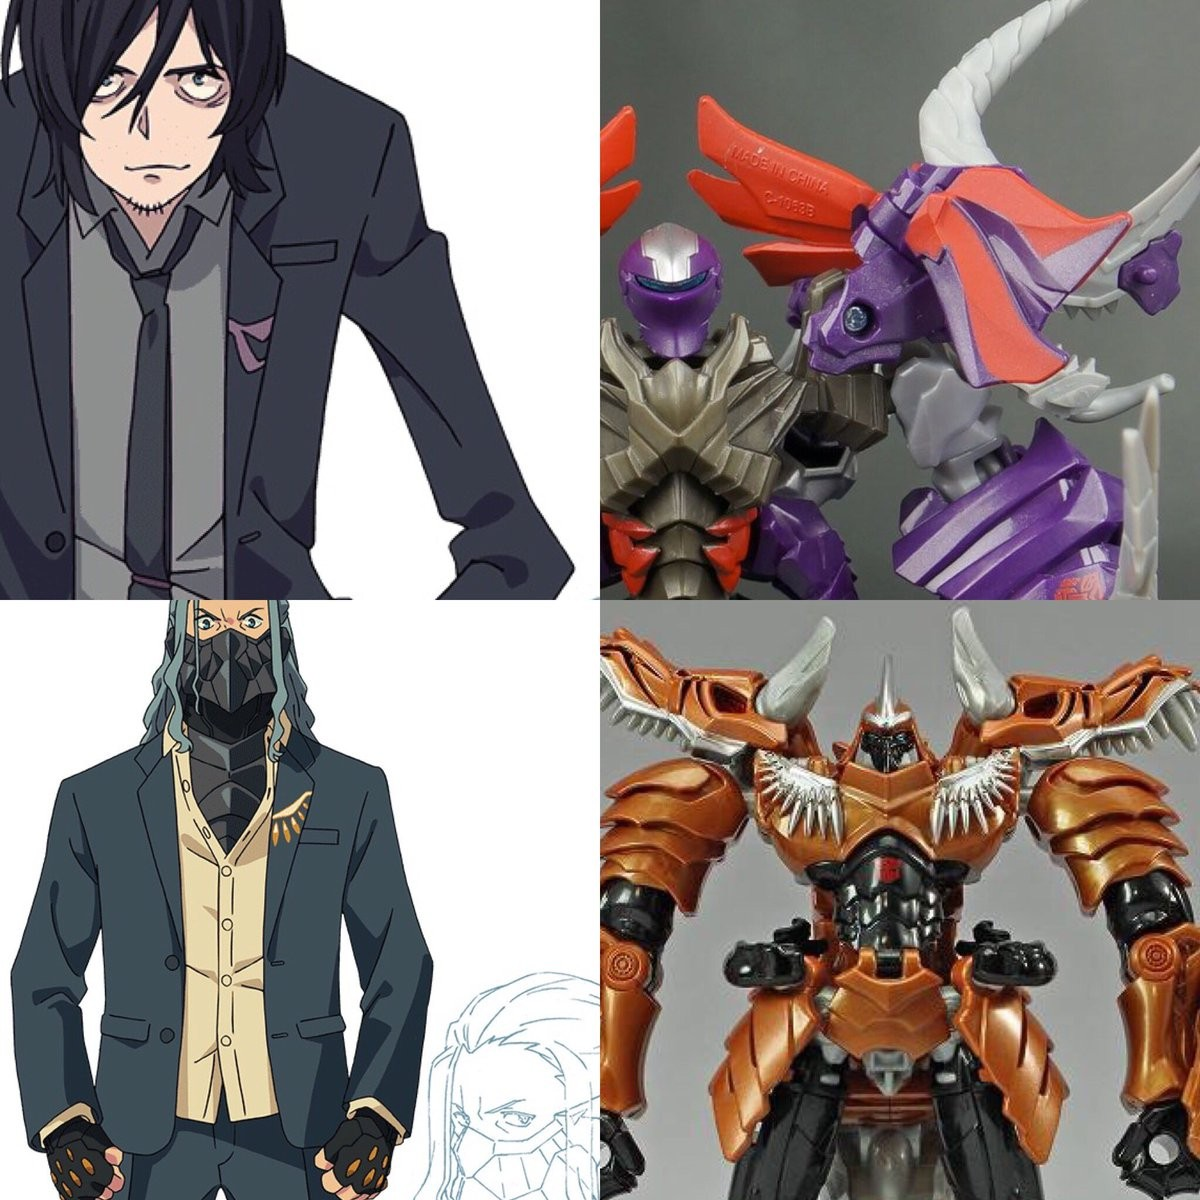 Transformers News: A Shattered Glass Anime? SSSS Gridman Piles on Transformers References